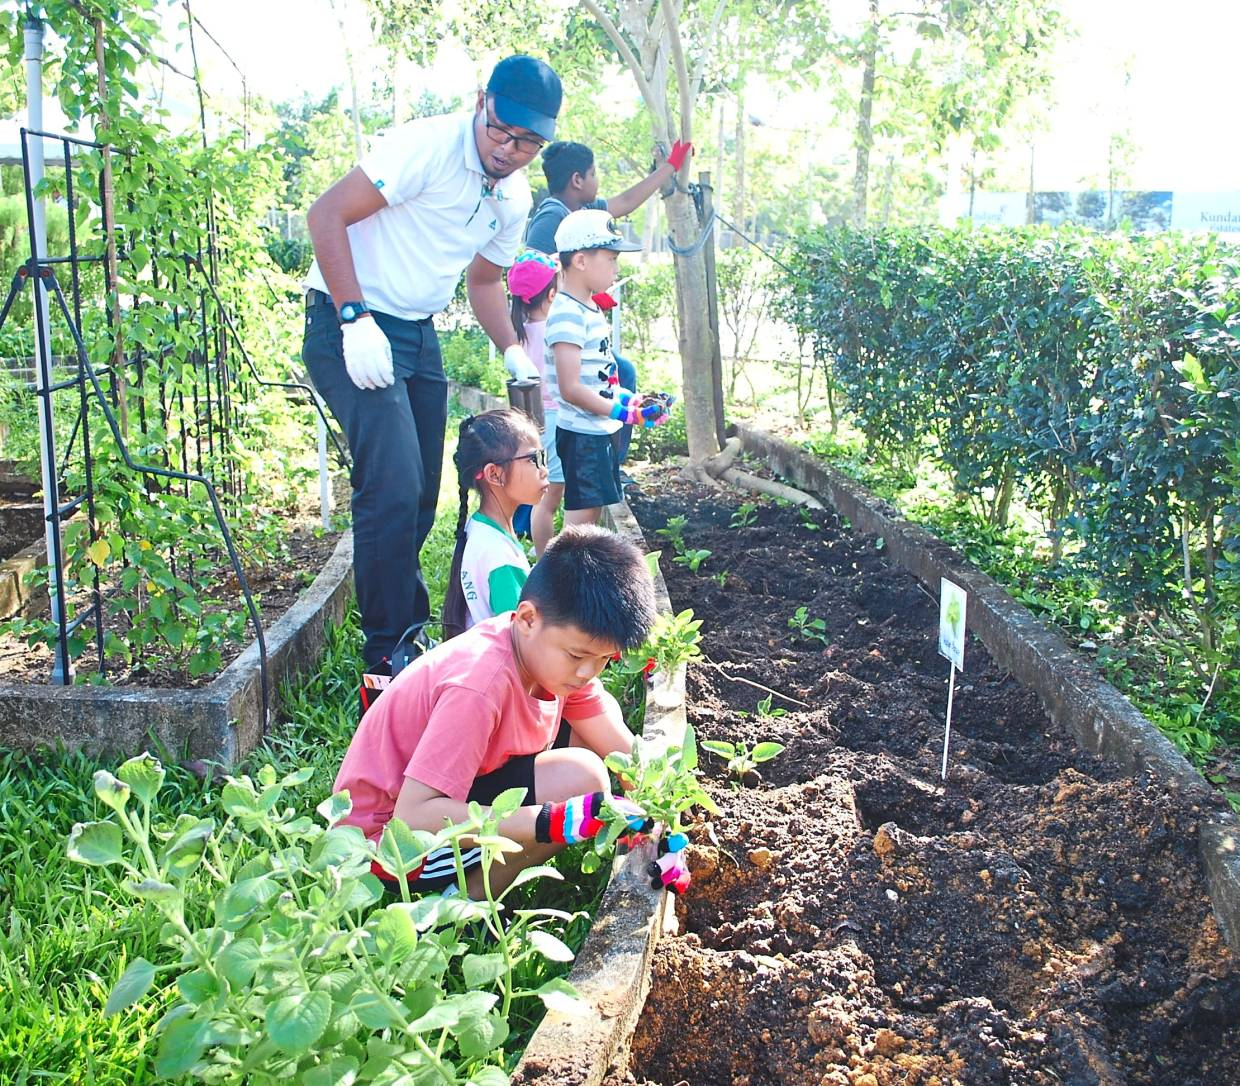 Community engagement activities are held frequently in Kundang Estates to cultivate appreciation for nature.